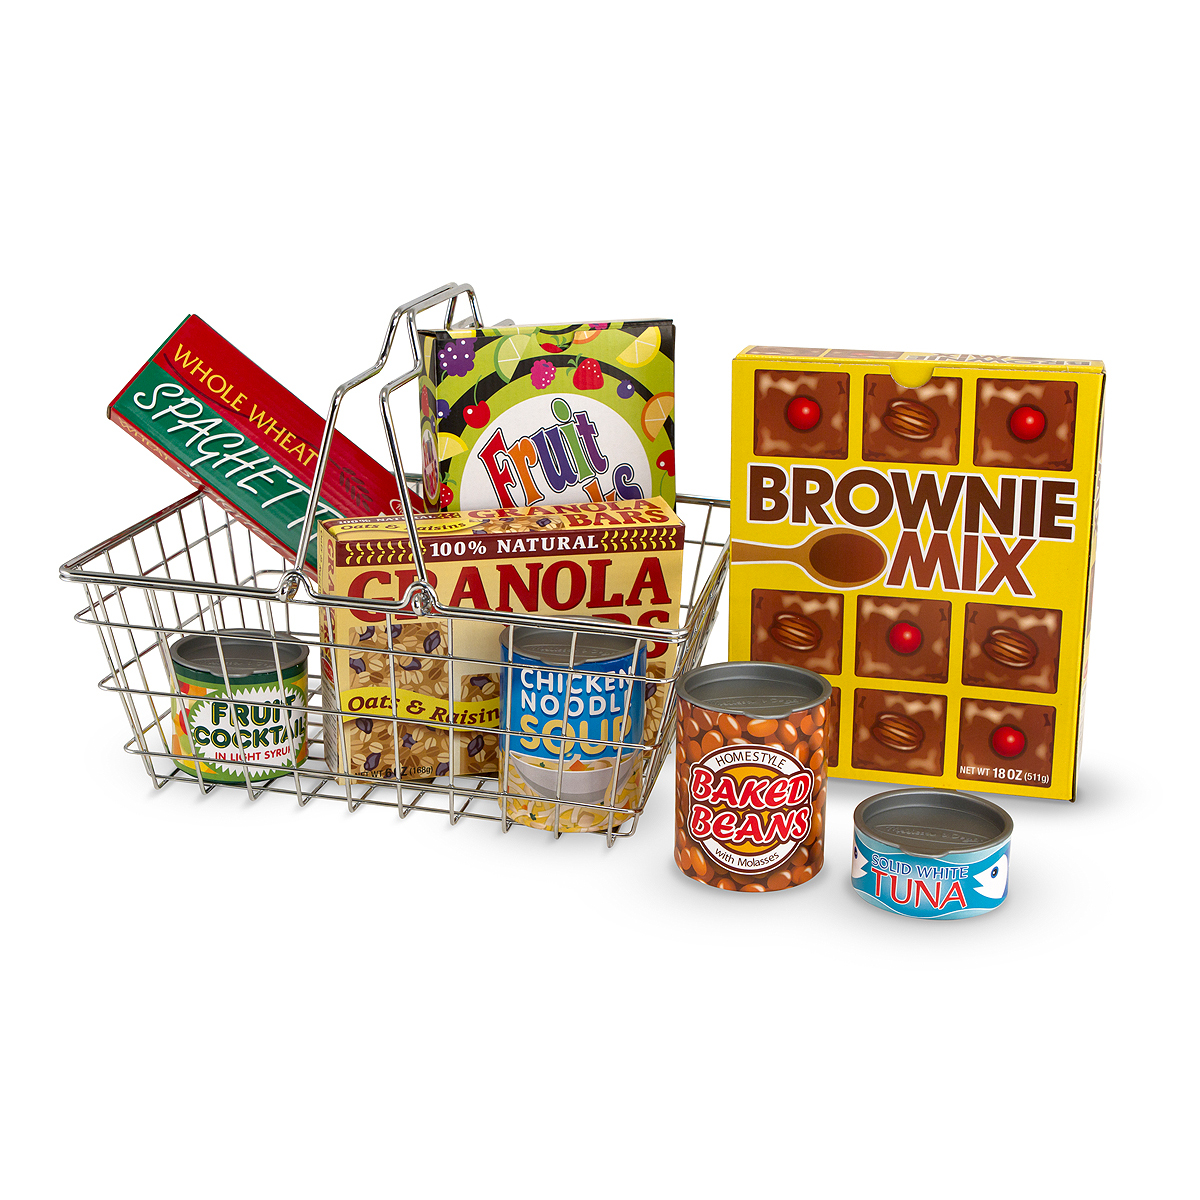 Melissa & Doug Metal Grocery Basket Toy with groceries